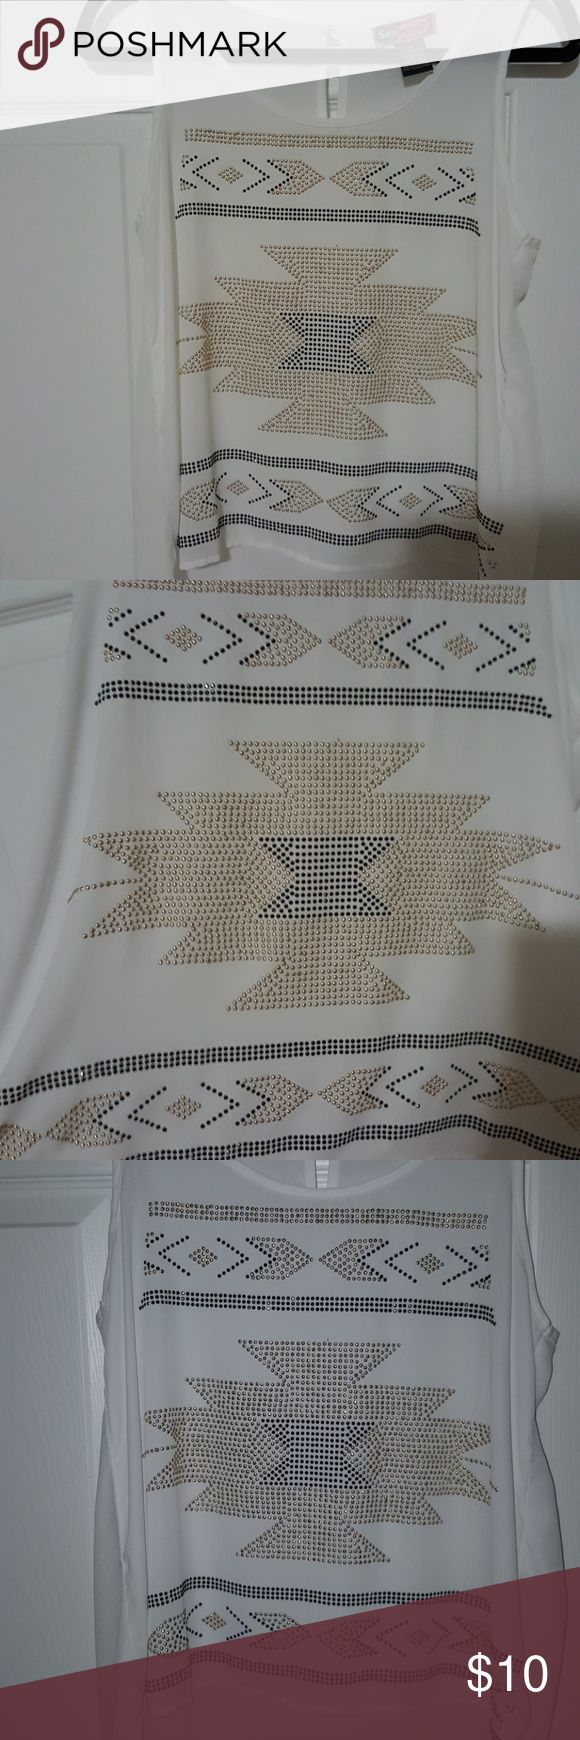 NWOT, Say What? Tribal shirt NWOT, Say What? Tribal Shirt Size M, Has on small freckle of dirt or dot on pic #7 you can barely see it Say What? Tops